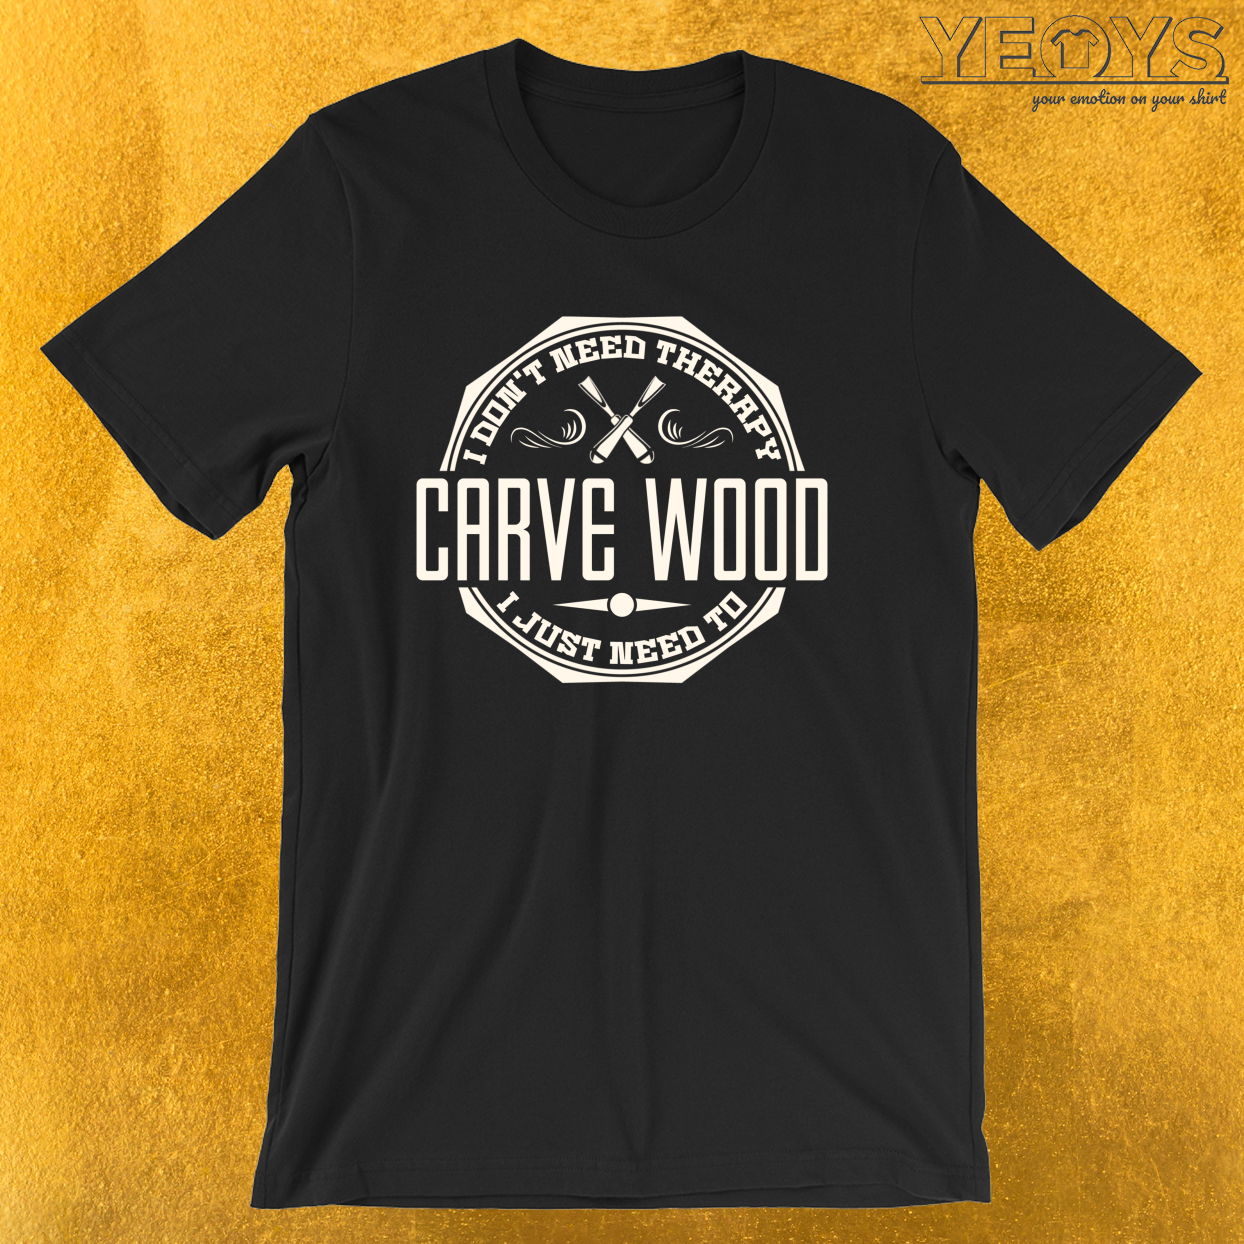 I Don't Need Therapy Need To Carve Wood – Whittle Wood Tee